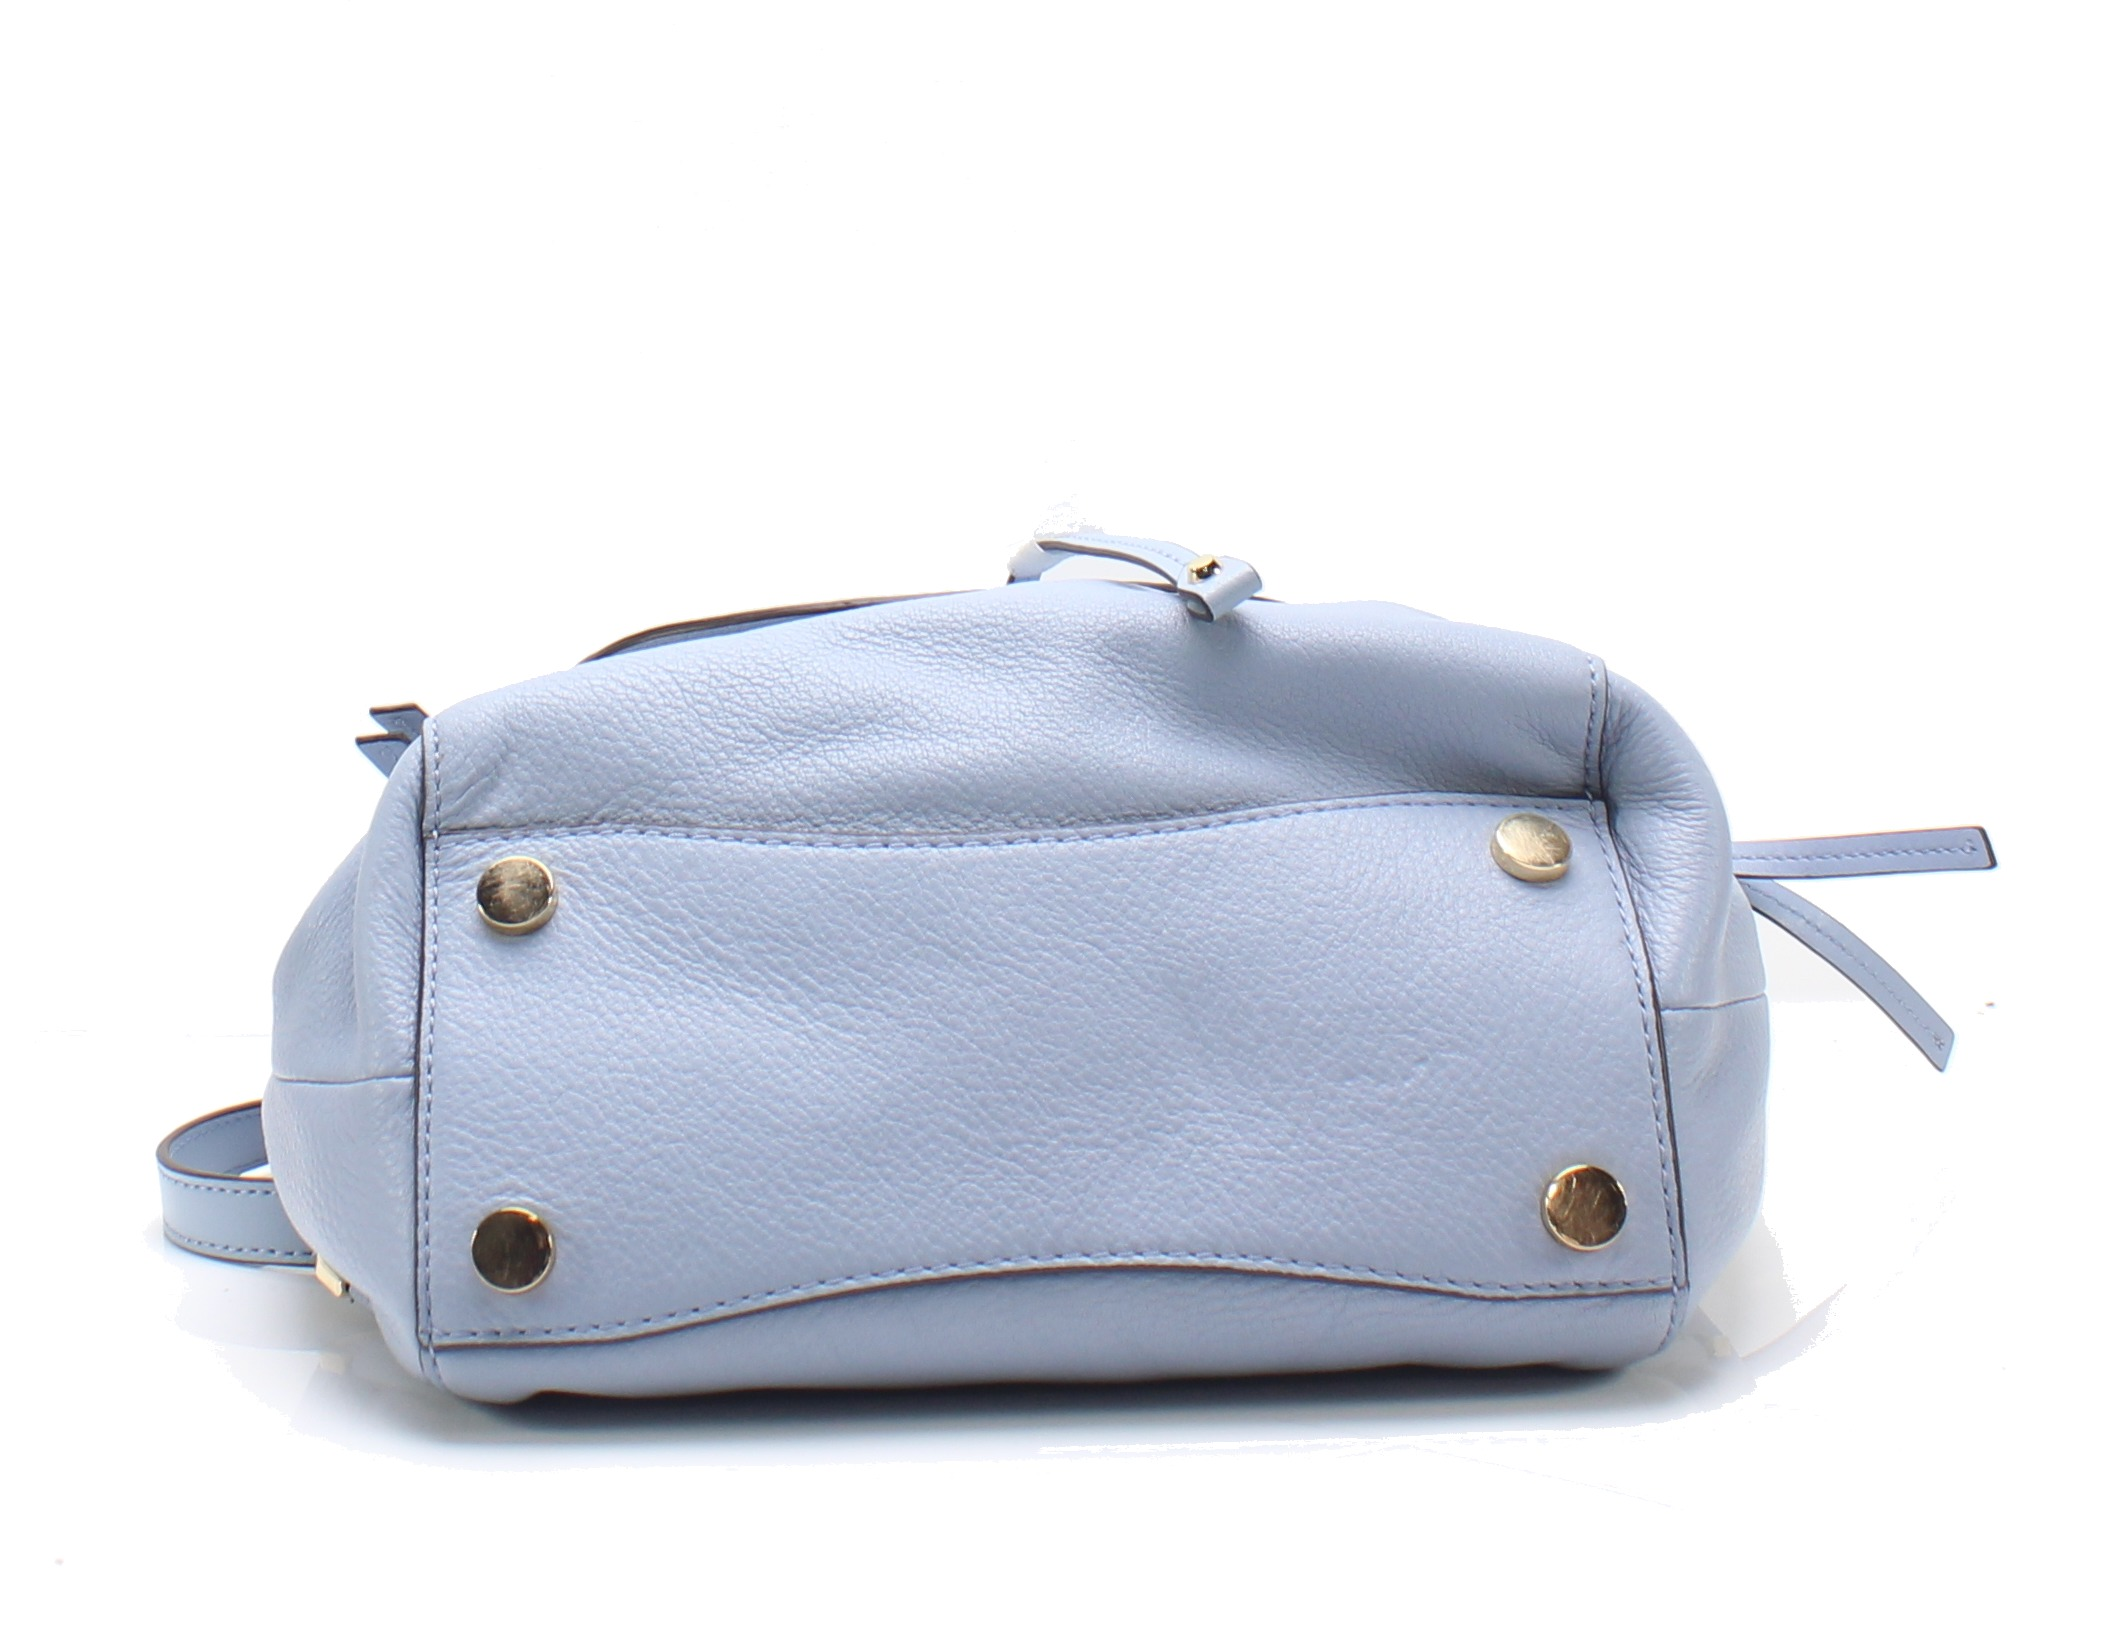 b0ee29a17279 Michael Kors NEW Pale Blue Evie Small Flower Garden Leather Backpack ...